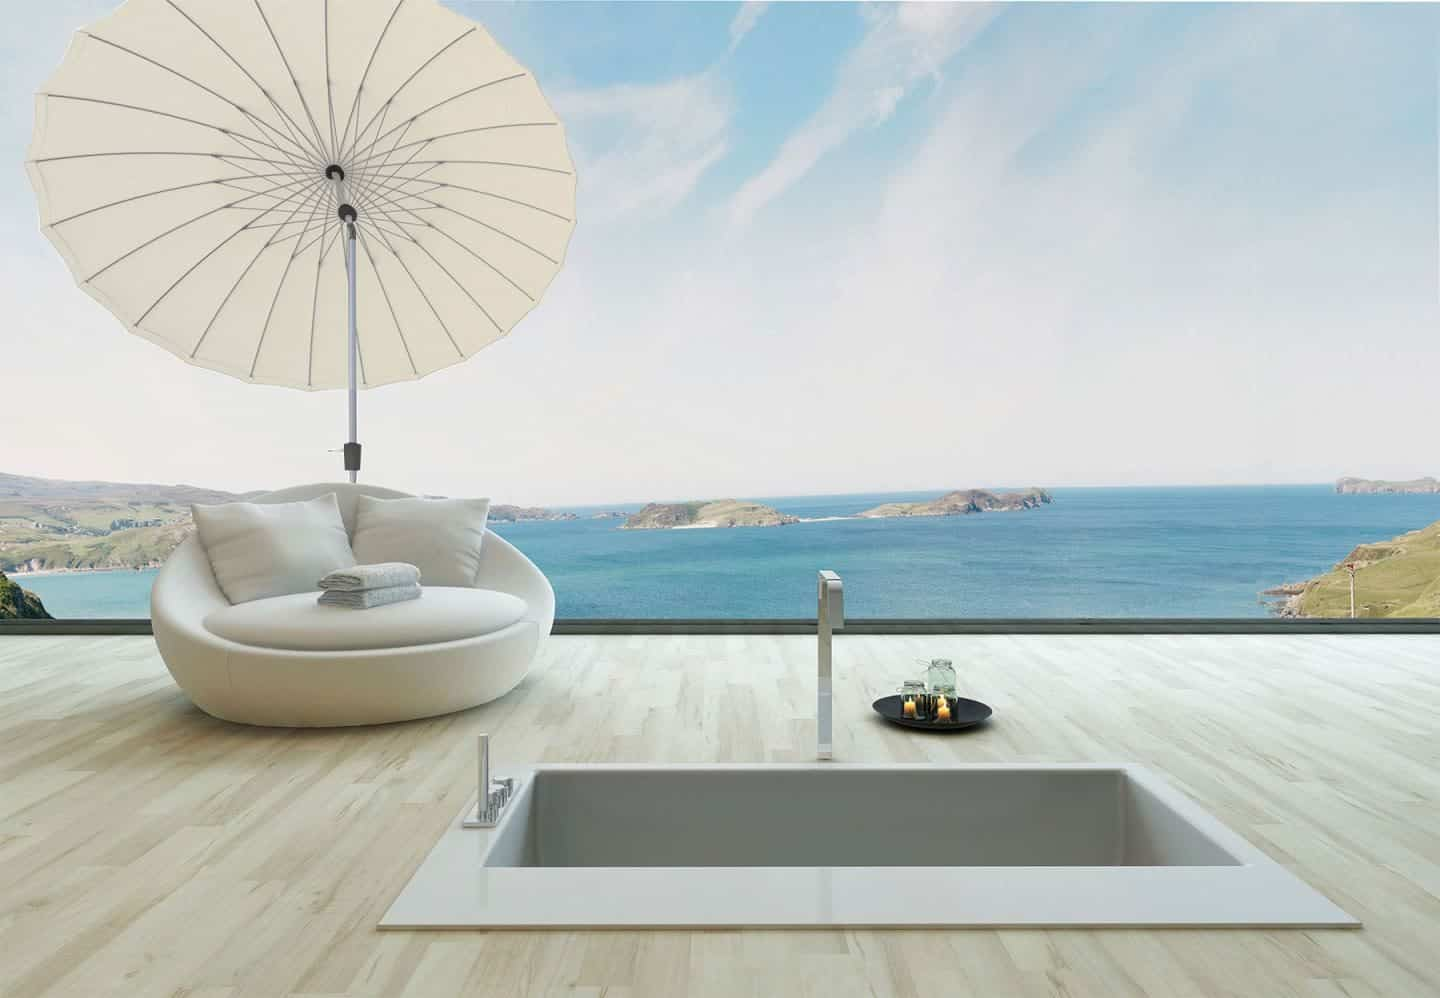 Garden Parasol from Solero Parasols. Large round white garden parasol angled above an outdoor loungen chair